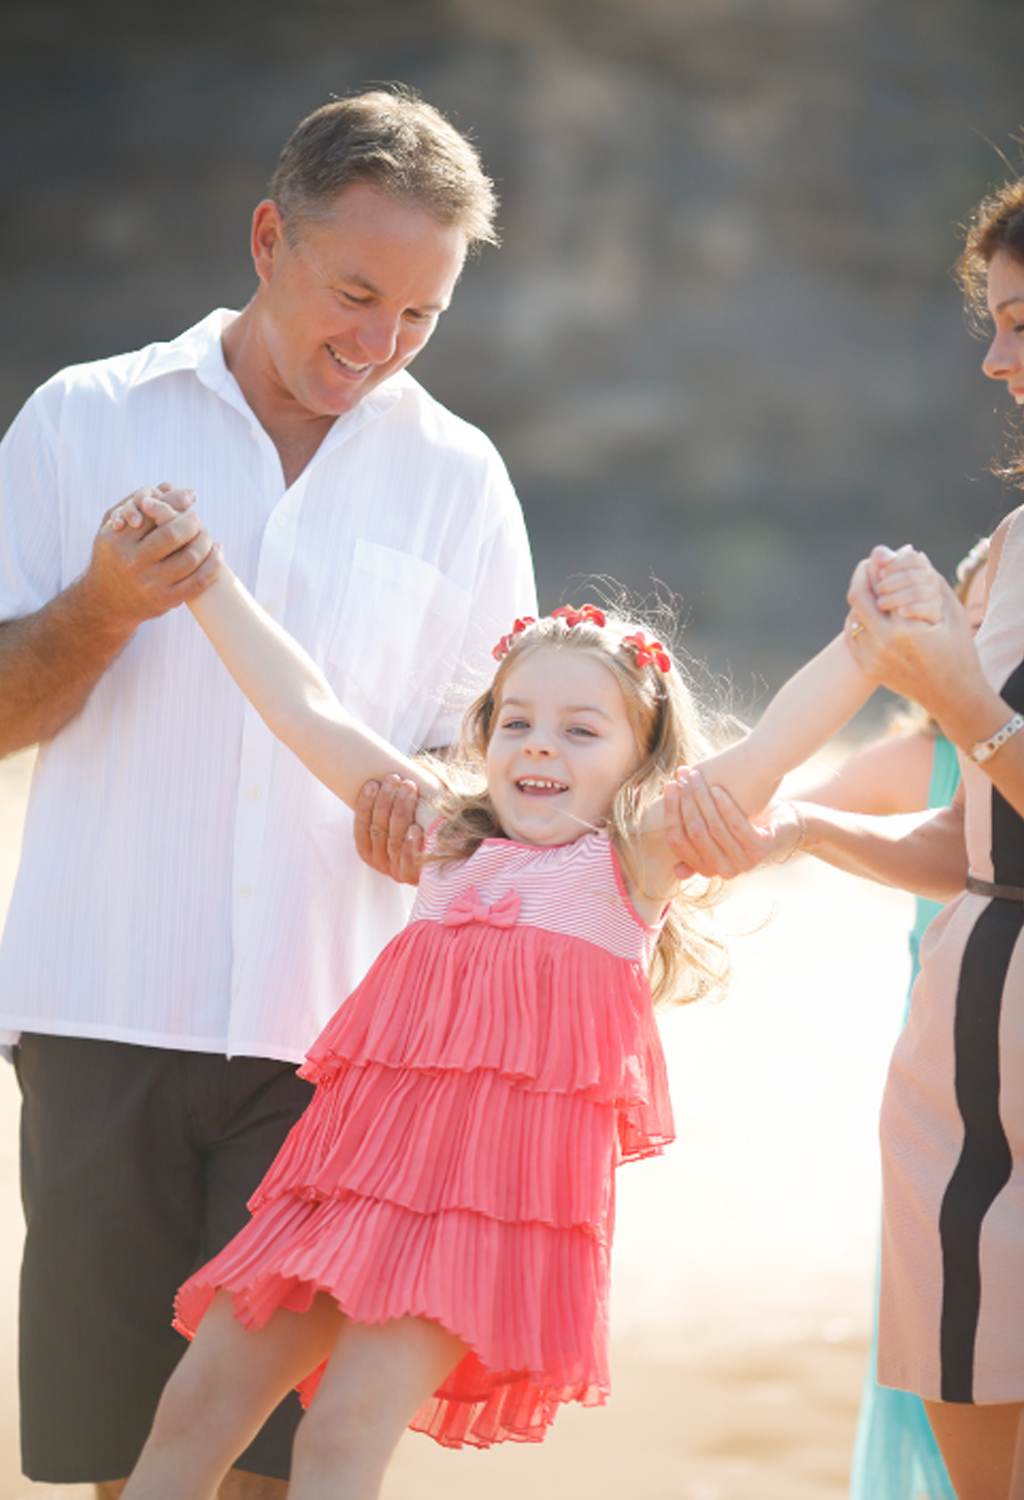 Chloe Saxby and her family. (Supplied)